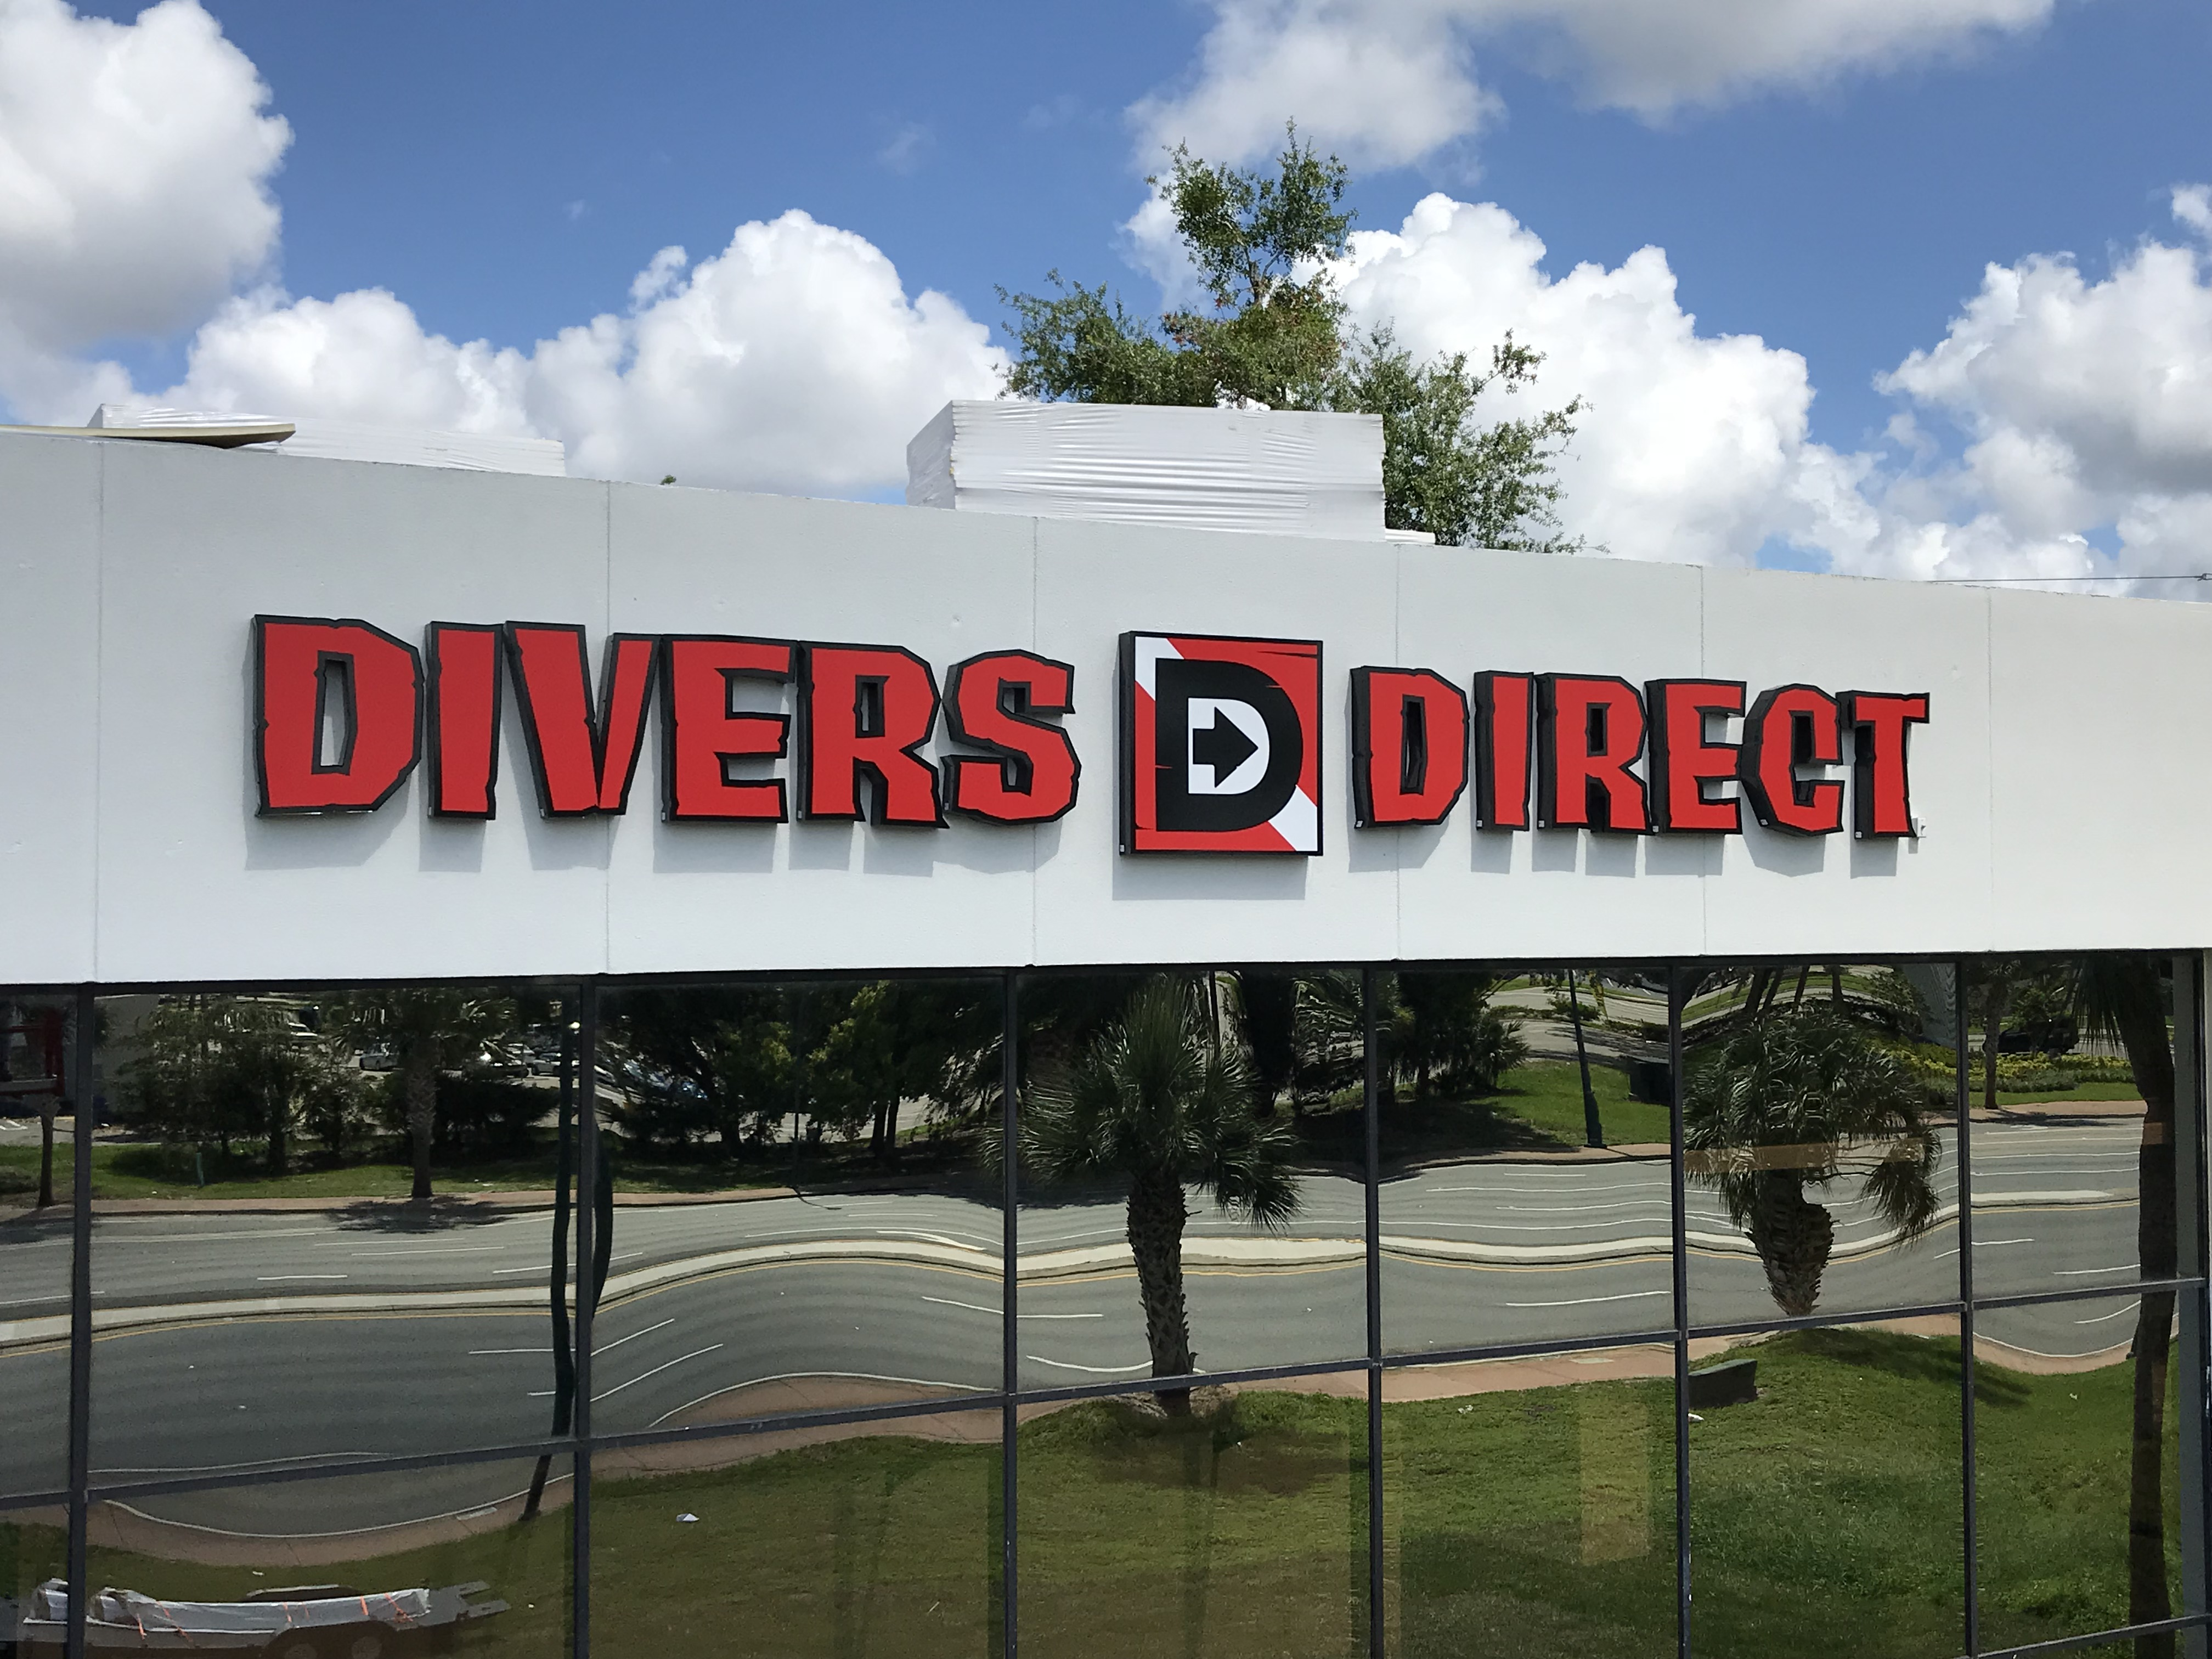 Divers Direct